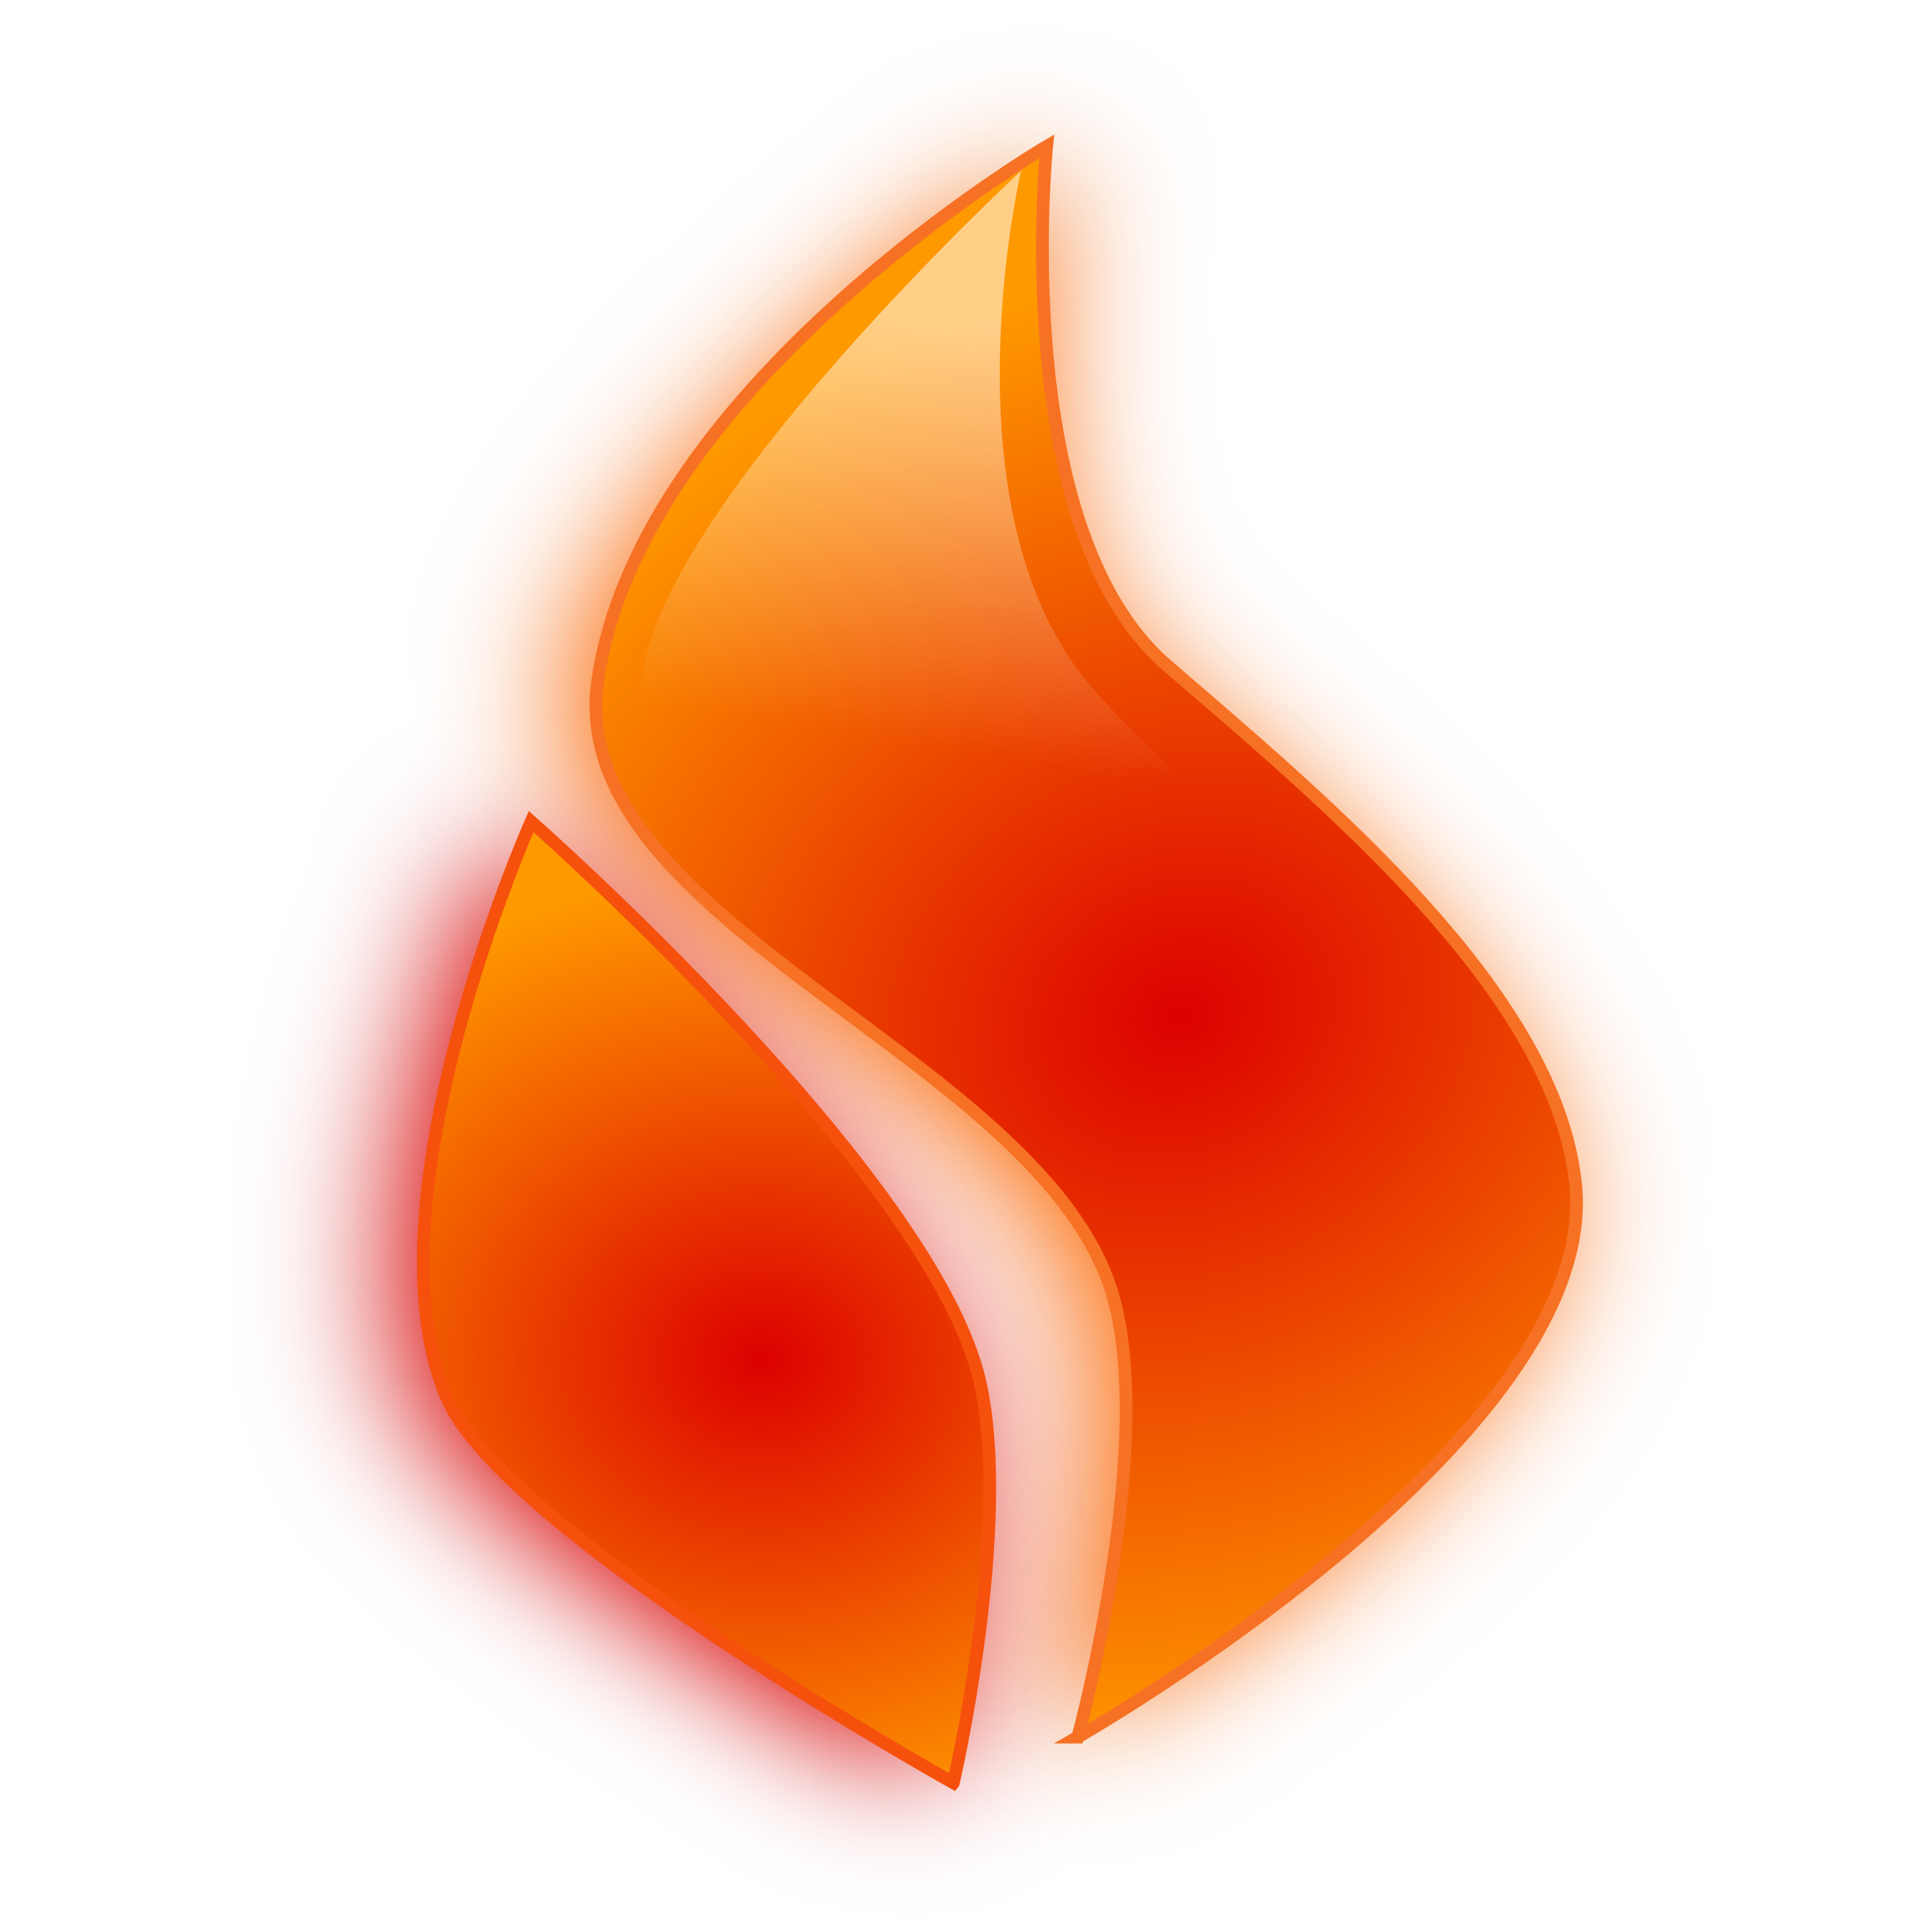 Flames clipart heat Clip Flame Glossy Clipart Clipartwork